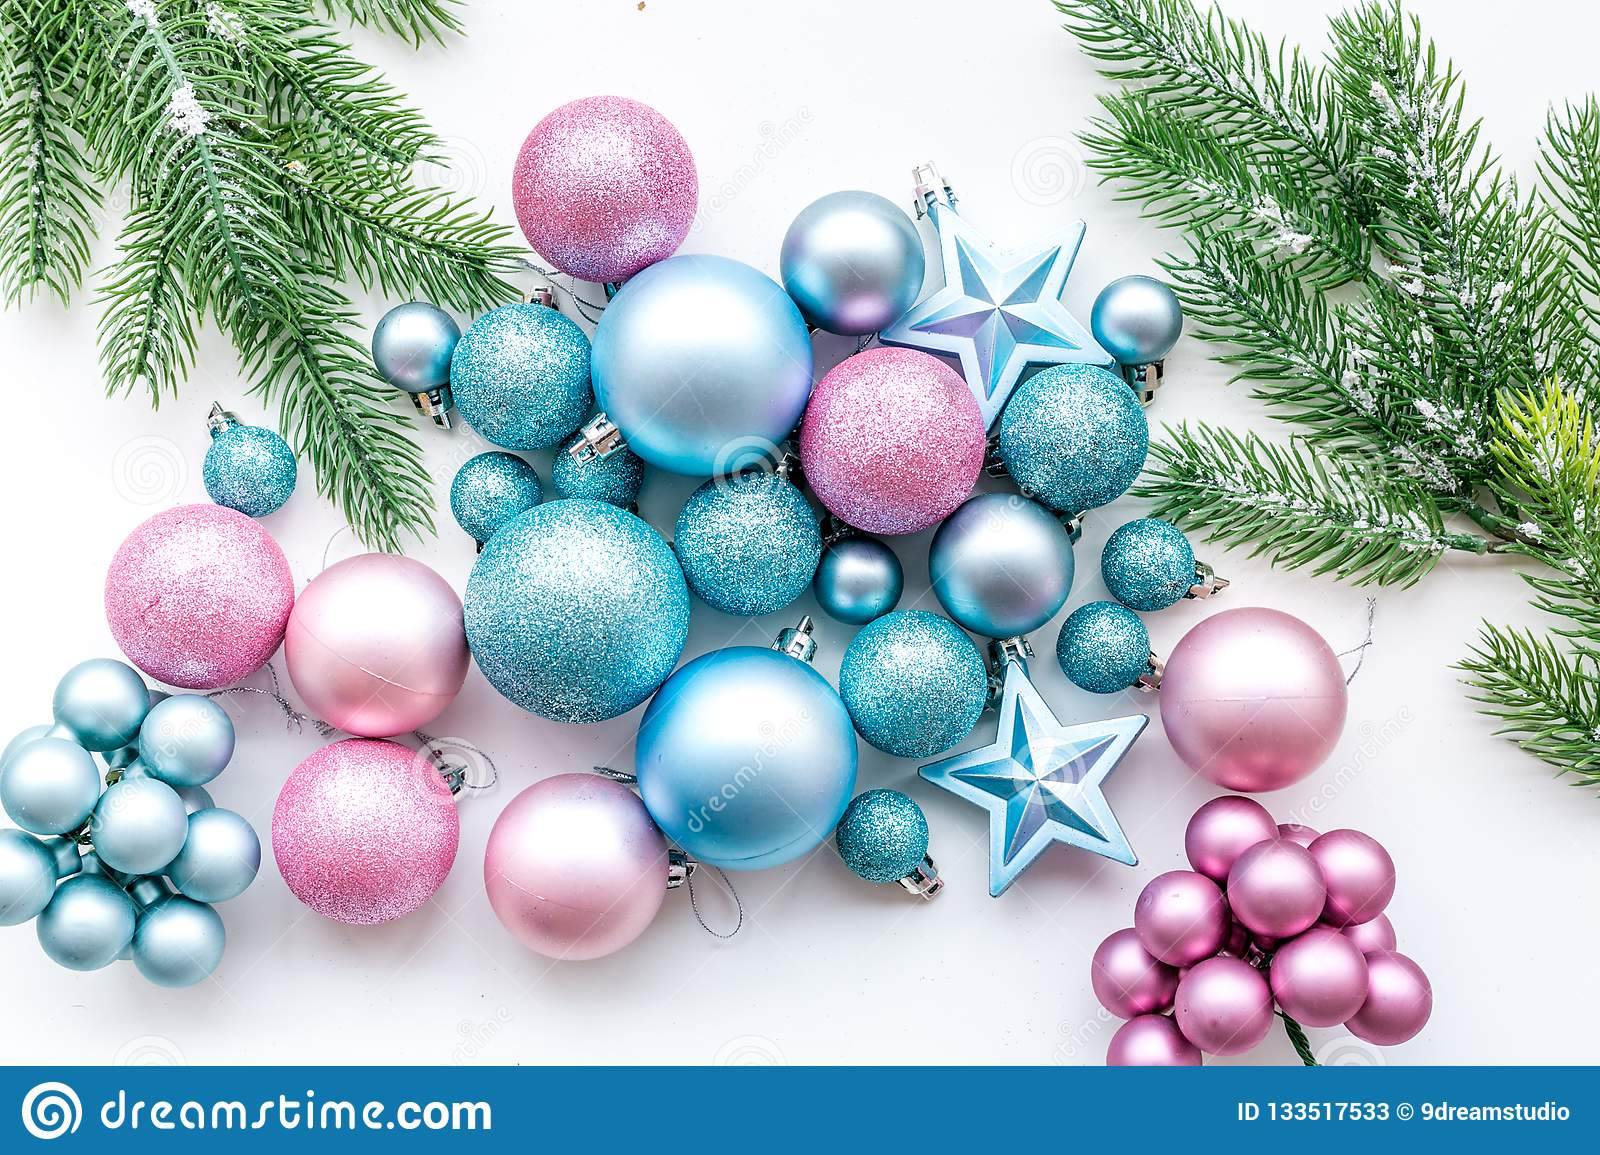 New Year And Christmas Atmosphere Decorate Festive Christmas Tree Christmas Tree Decoration Blue And Pink Balls A Stock Image Image Of Celebrating View 133517533